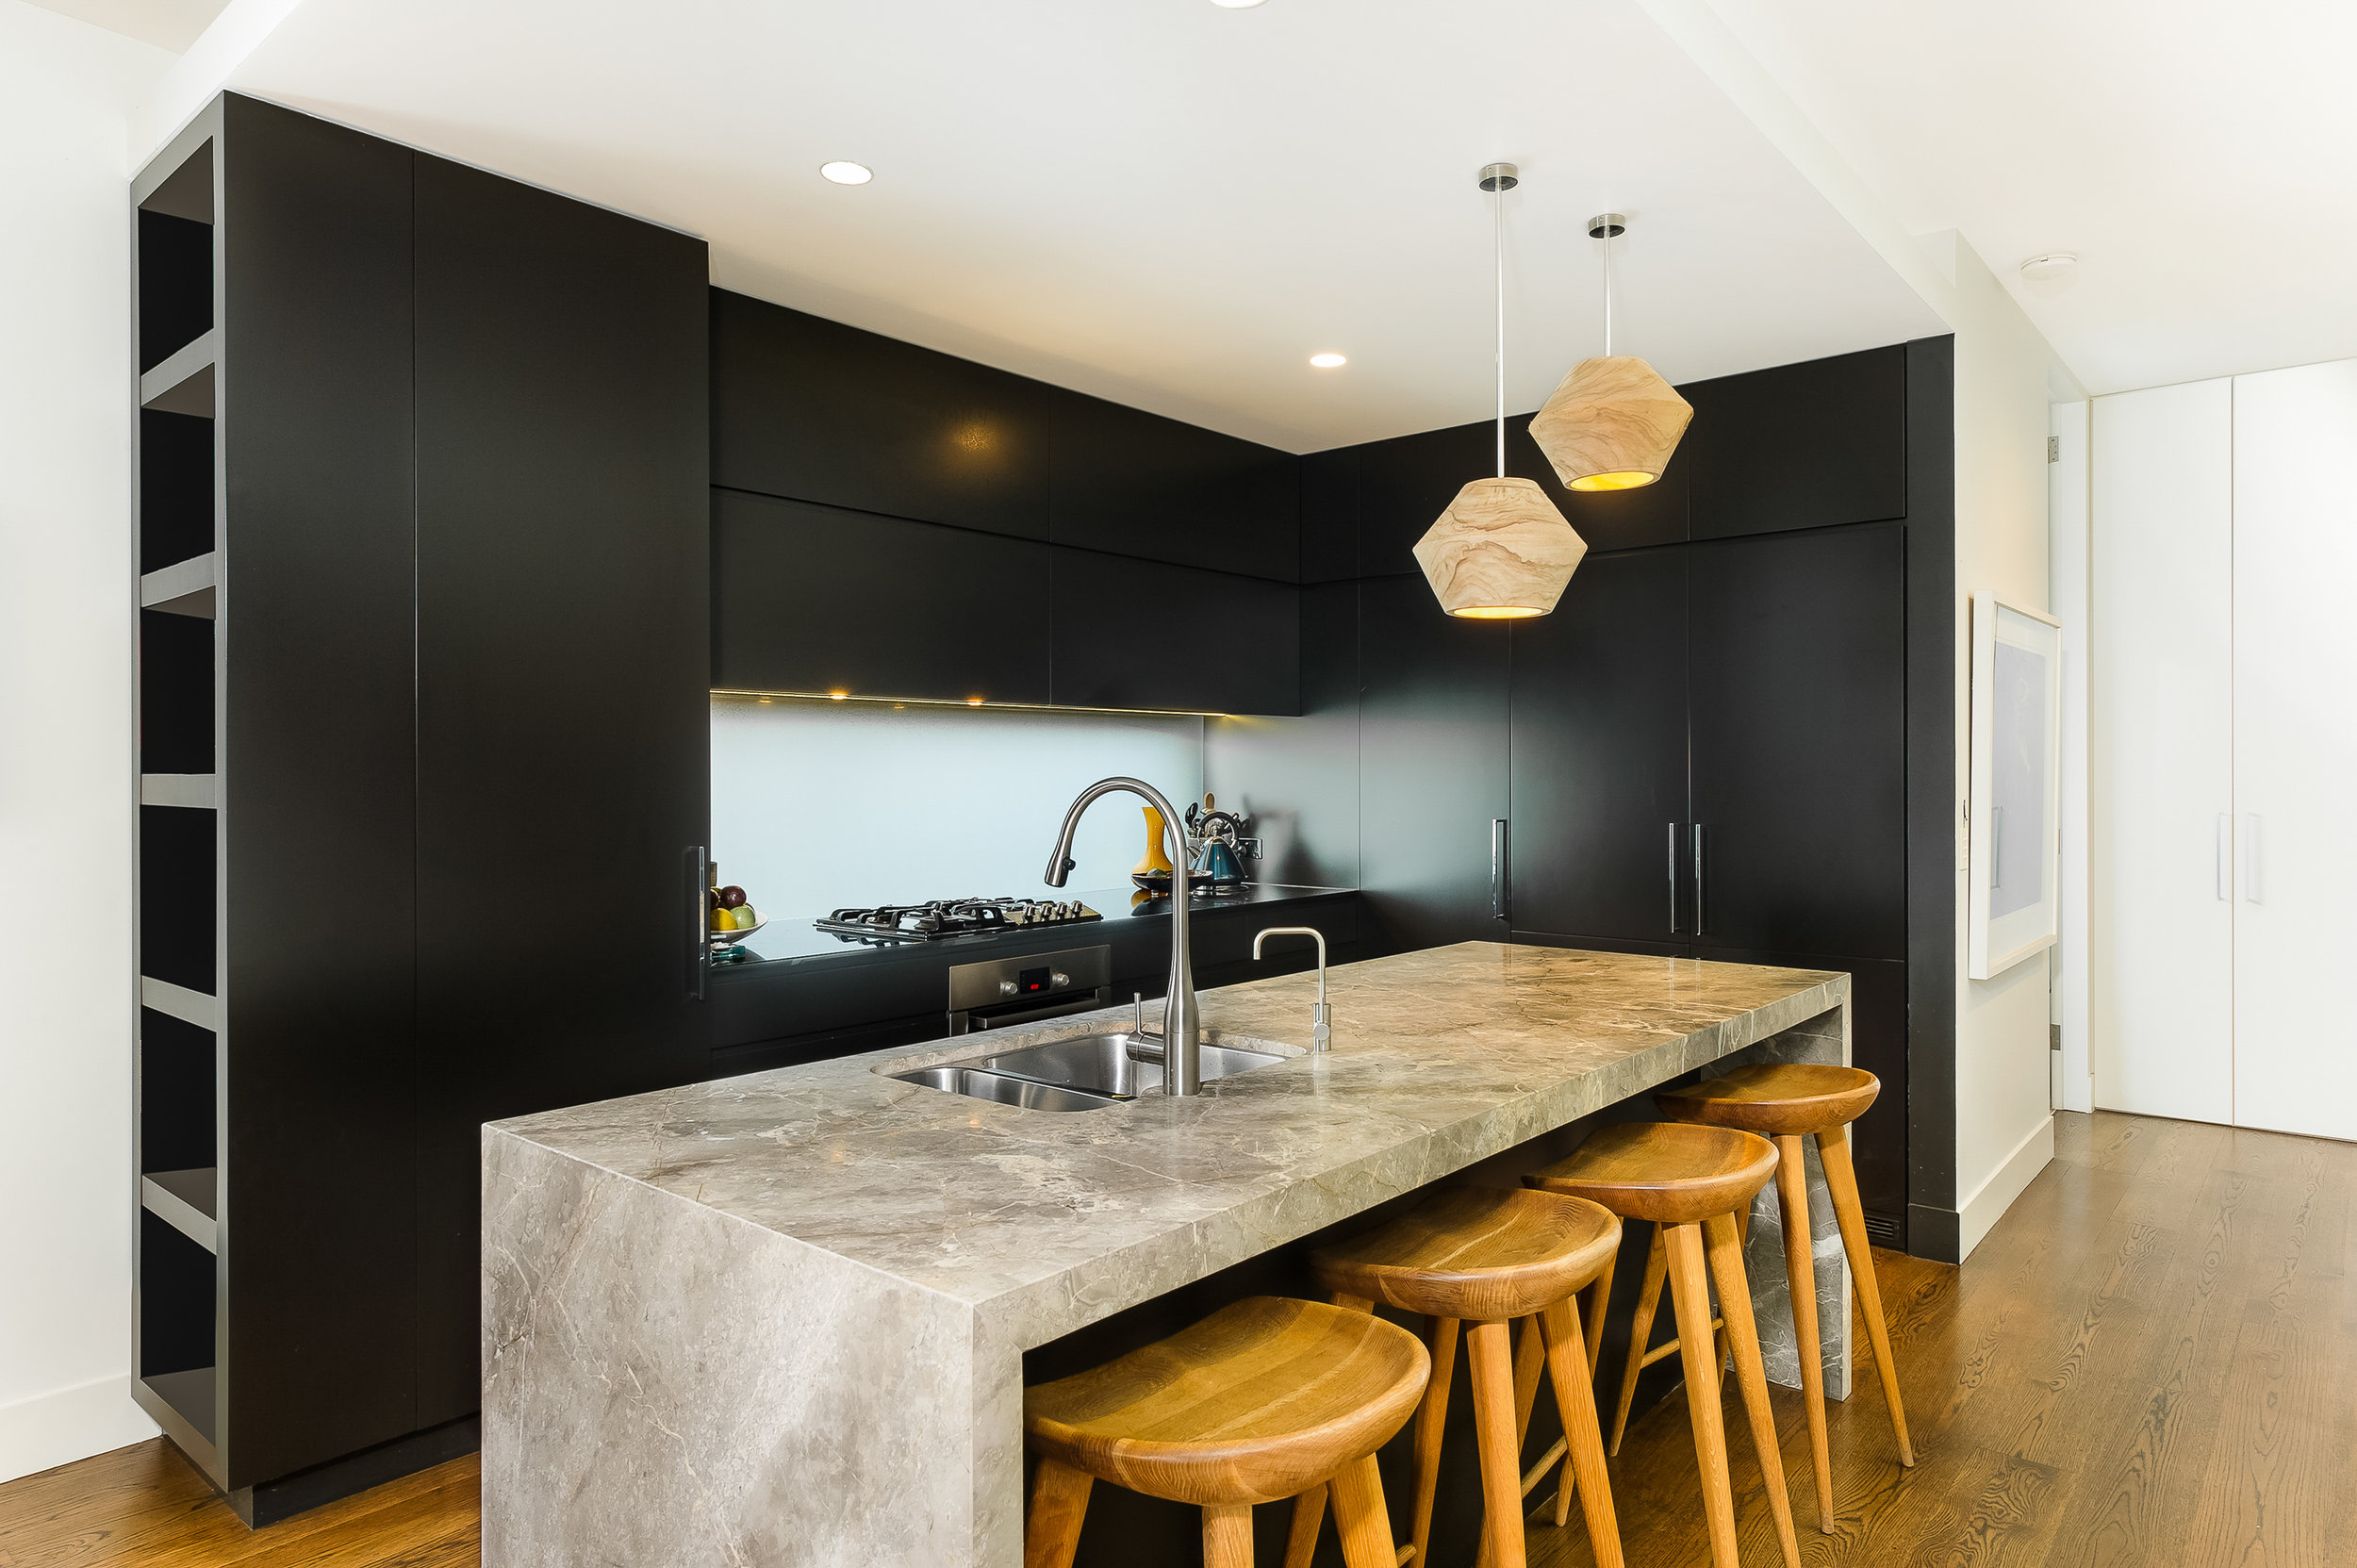 Copy of Kiama Shellharbour Gerringong Berry Wollongong South Coast Illawarra Commercial Photographer Photographer - Kitchen -1